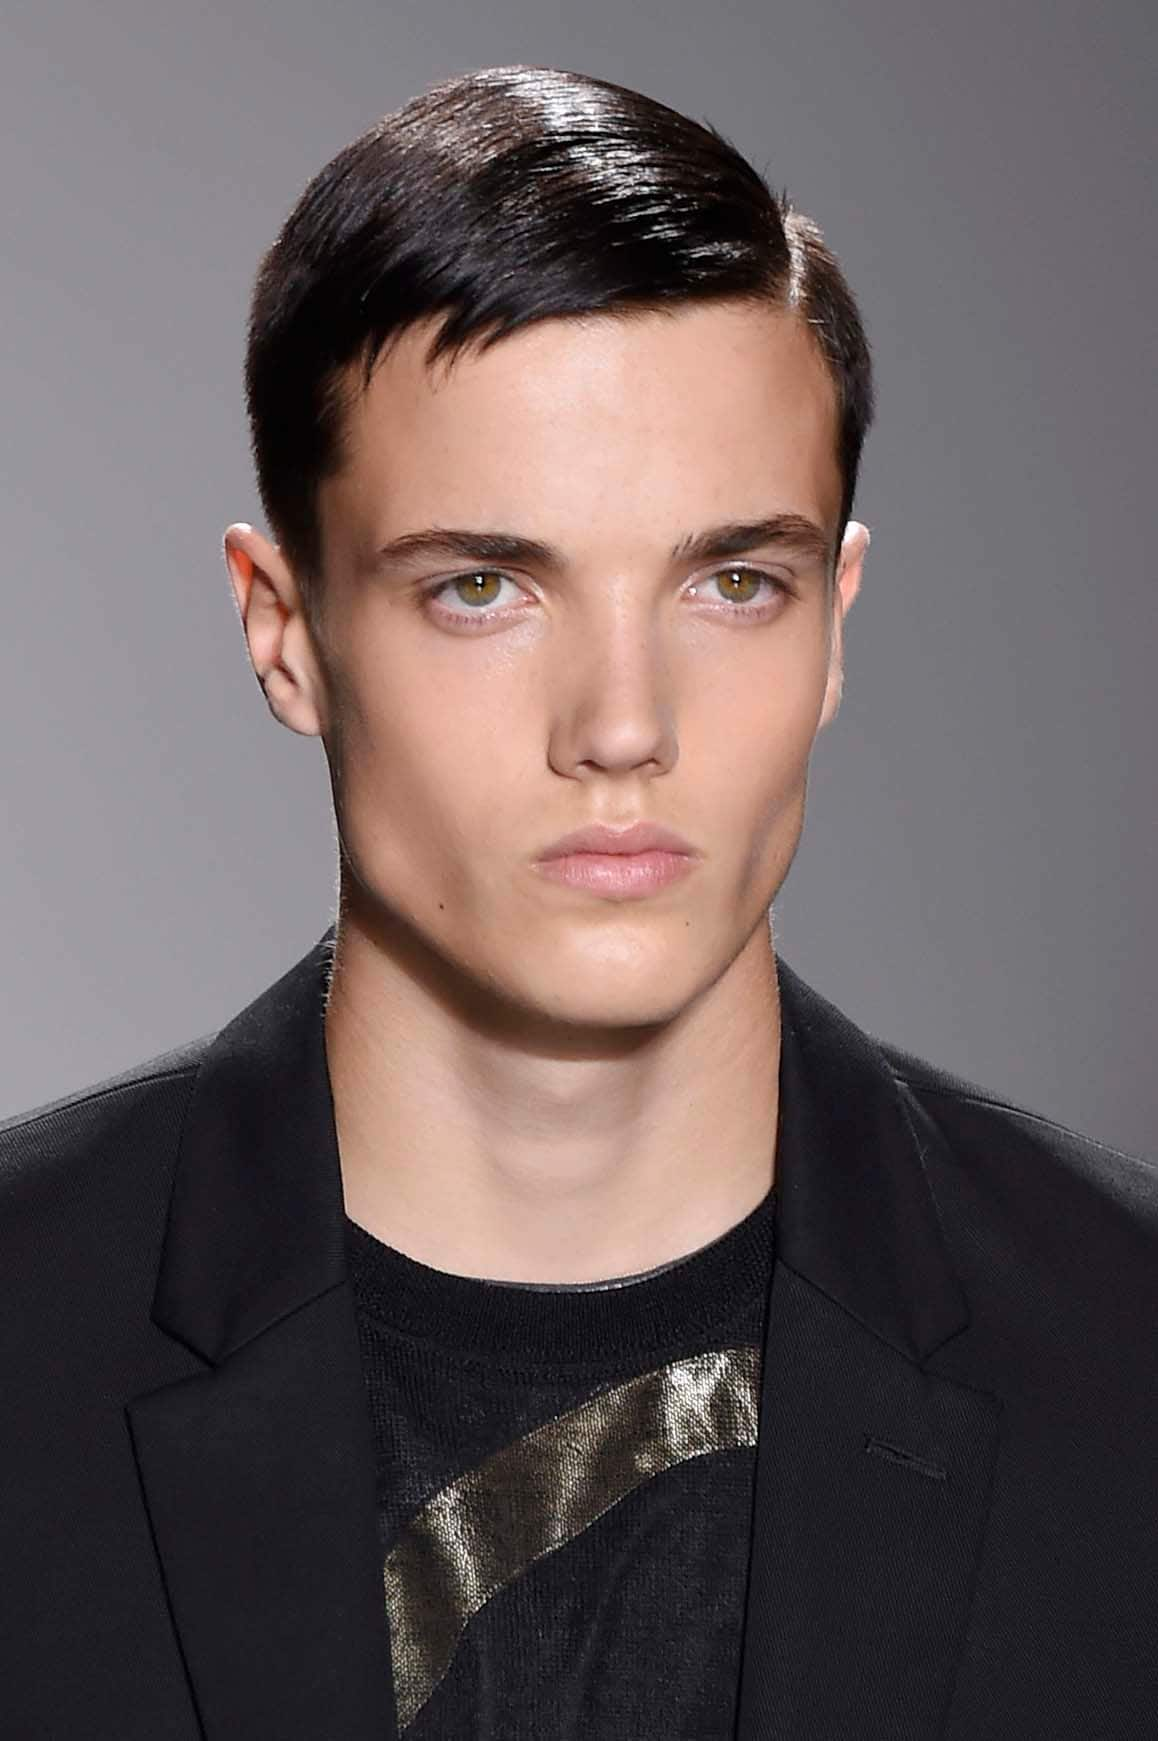 short comb over slicked hair